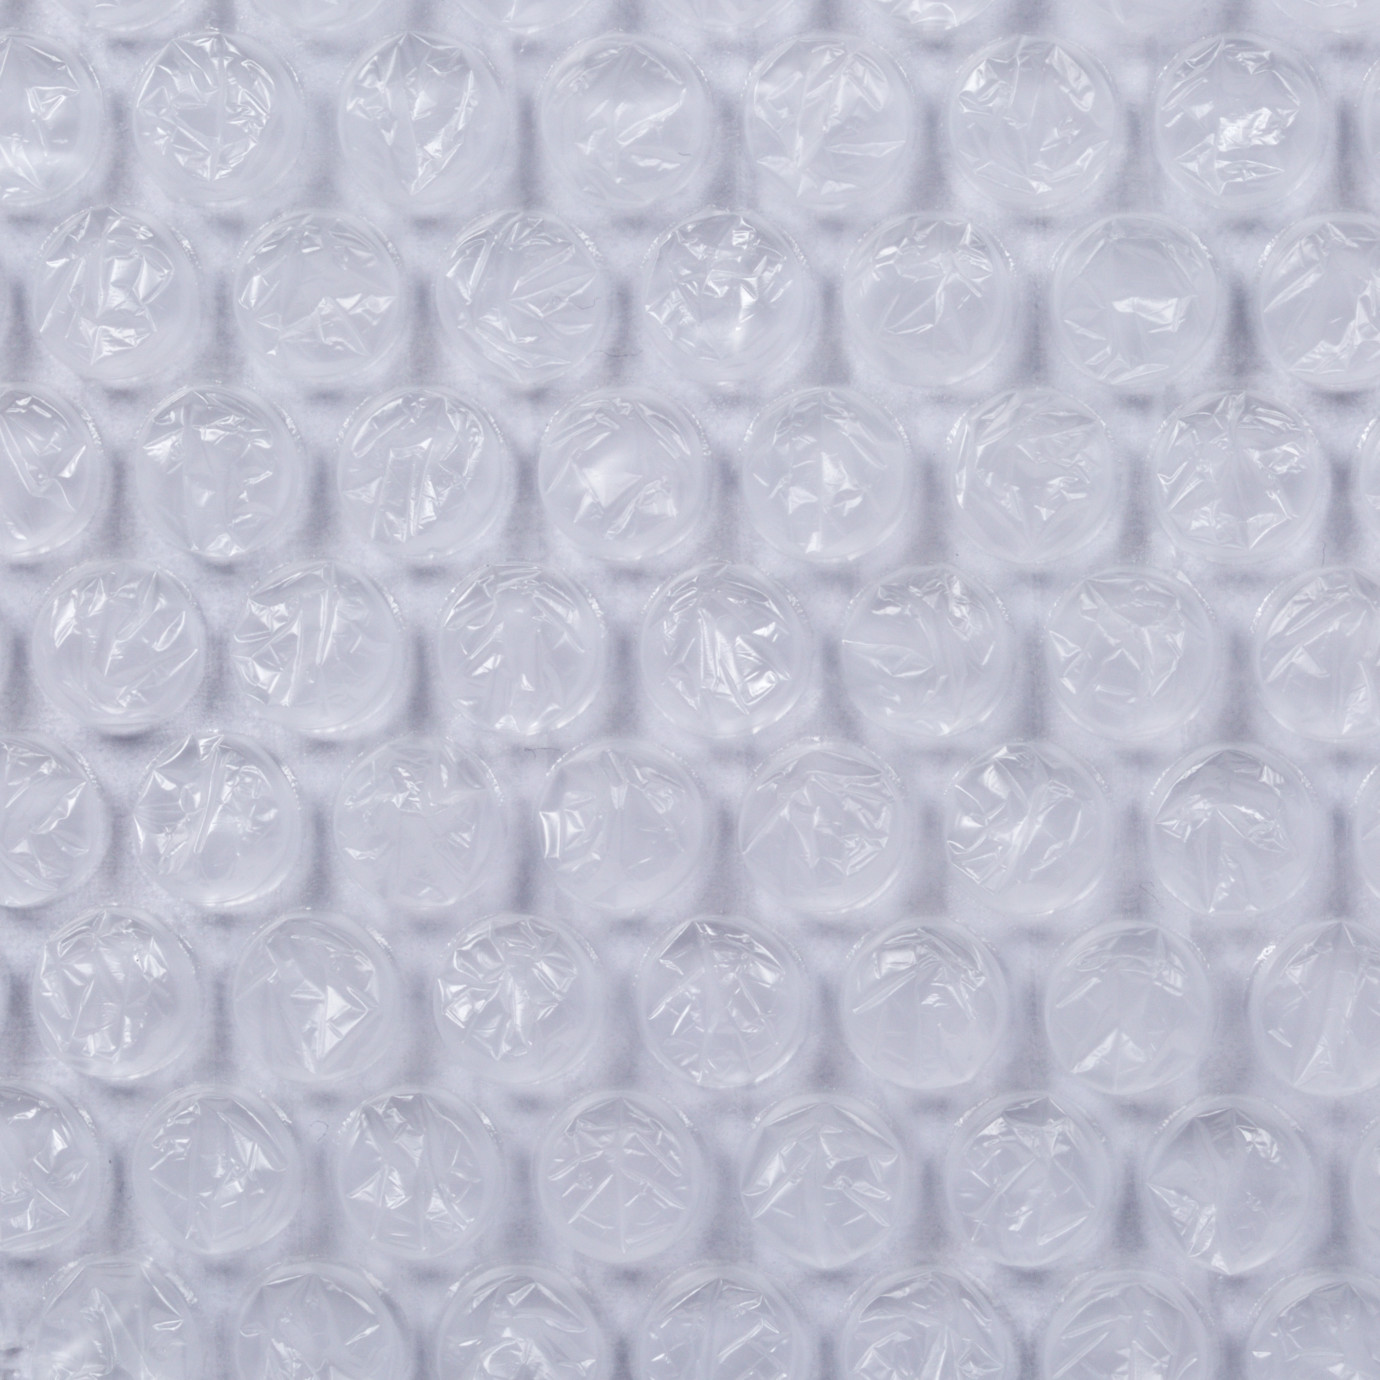 Duck Brand Bubble Wrap